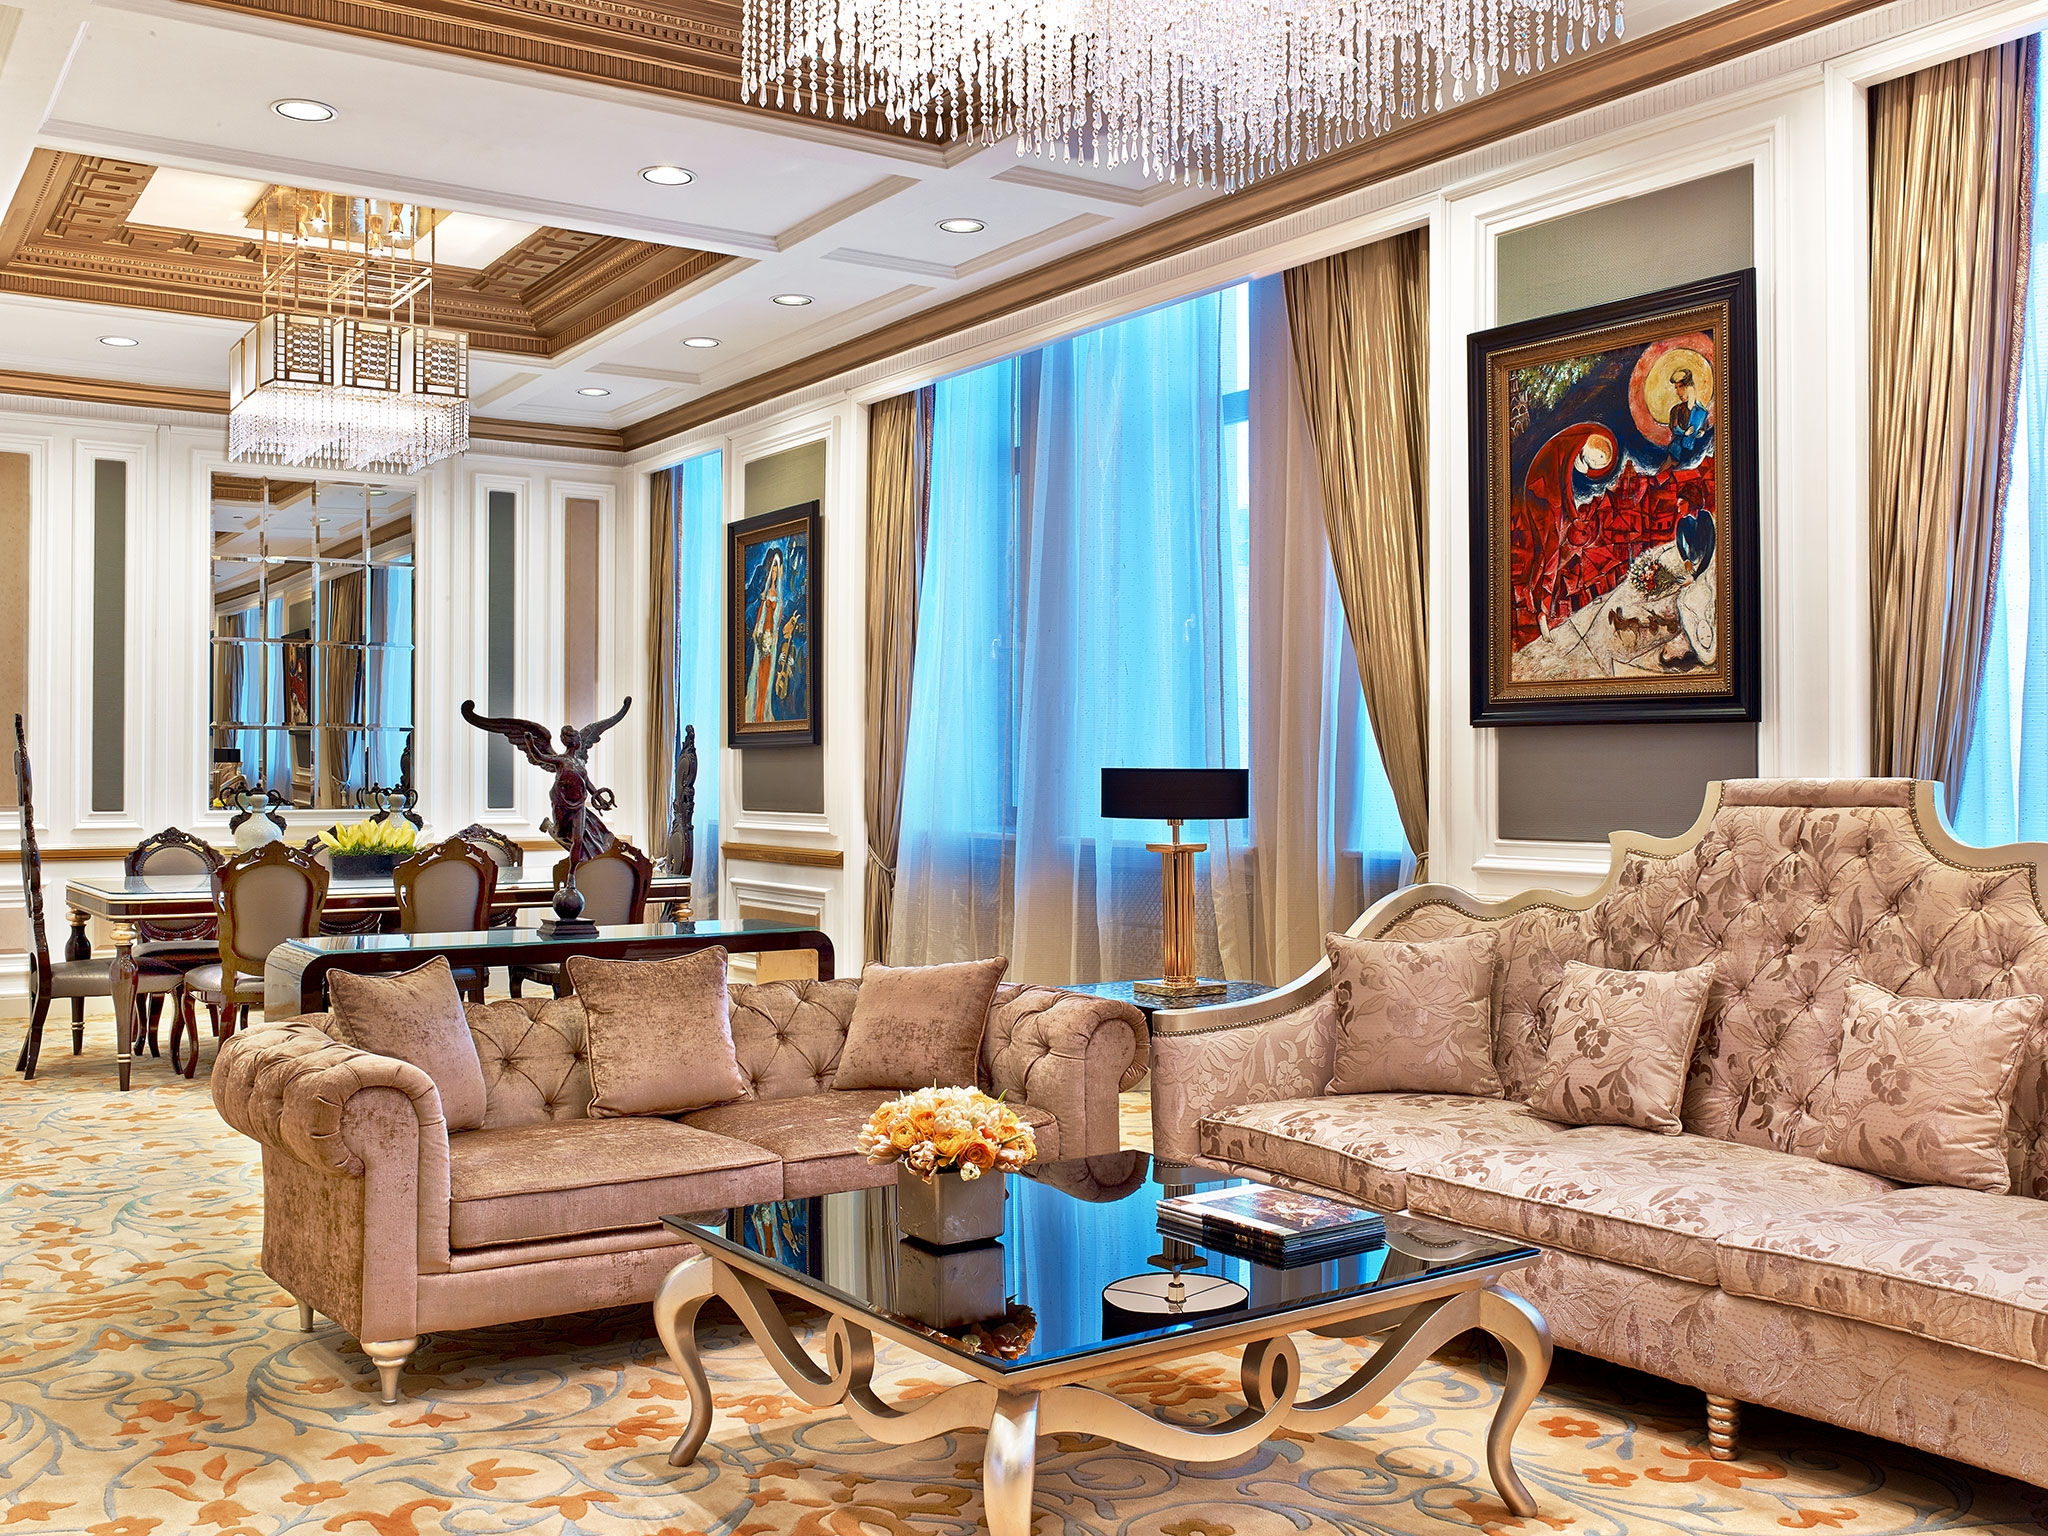 Royal Suite, The St. Regis Moscow Nikolskaya